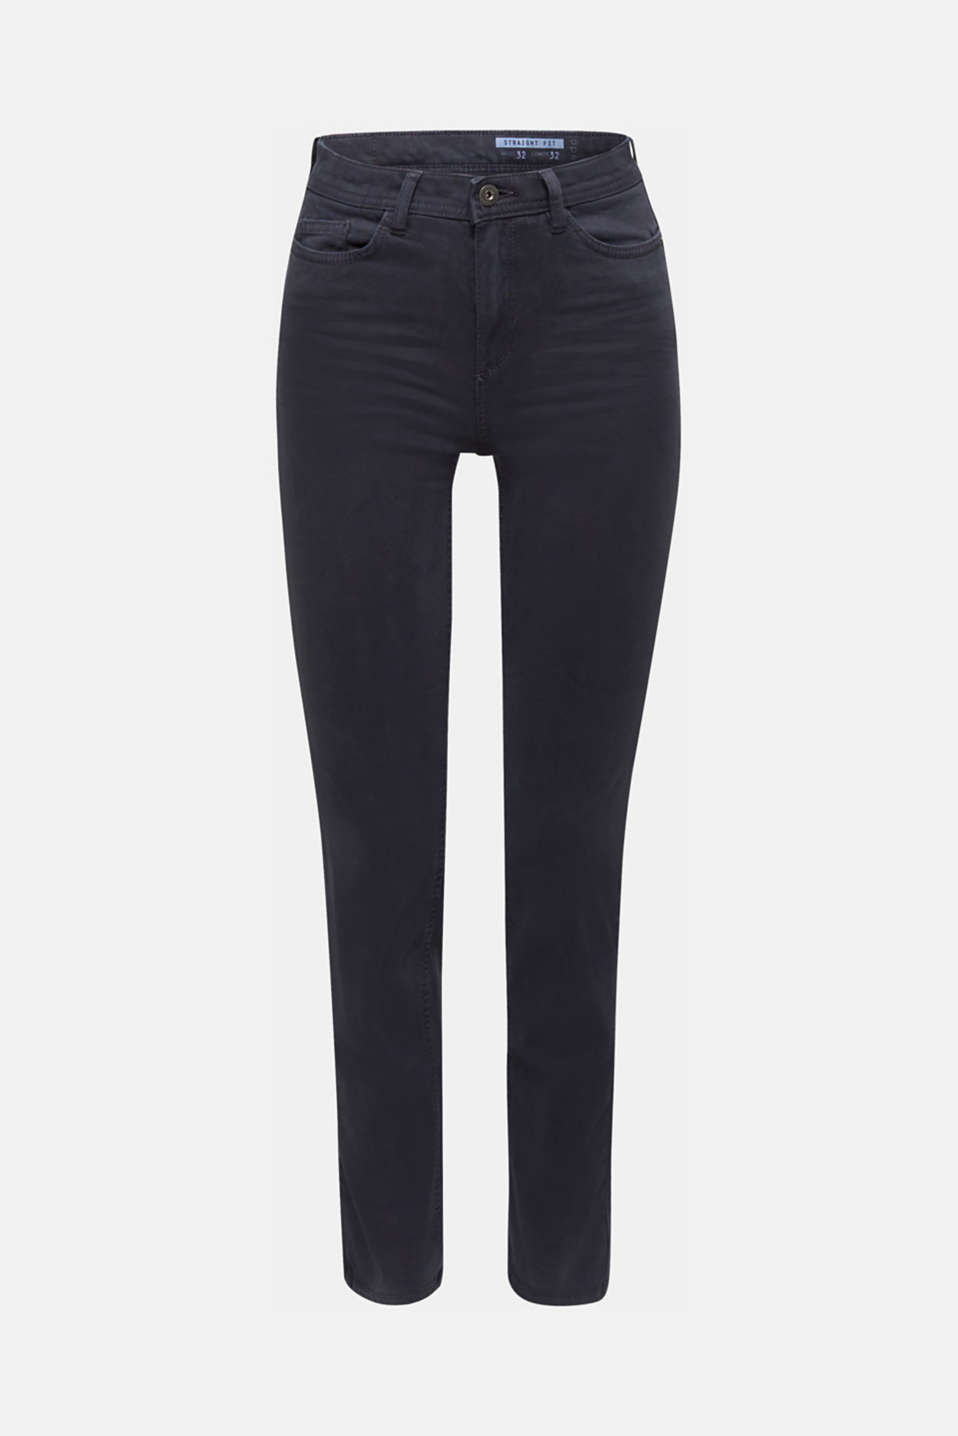 Washed-effect stretch trousers, NAVY, detail image number 7